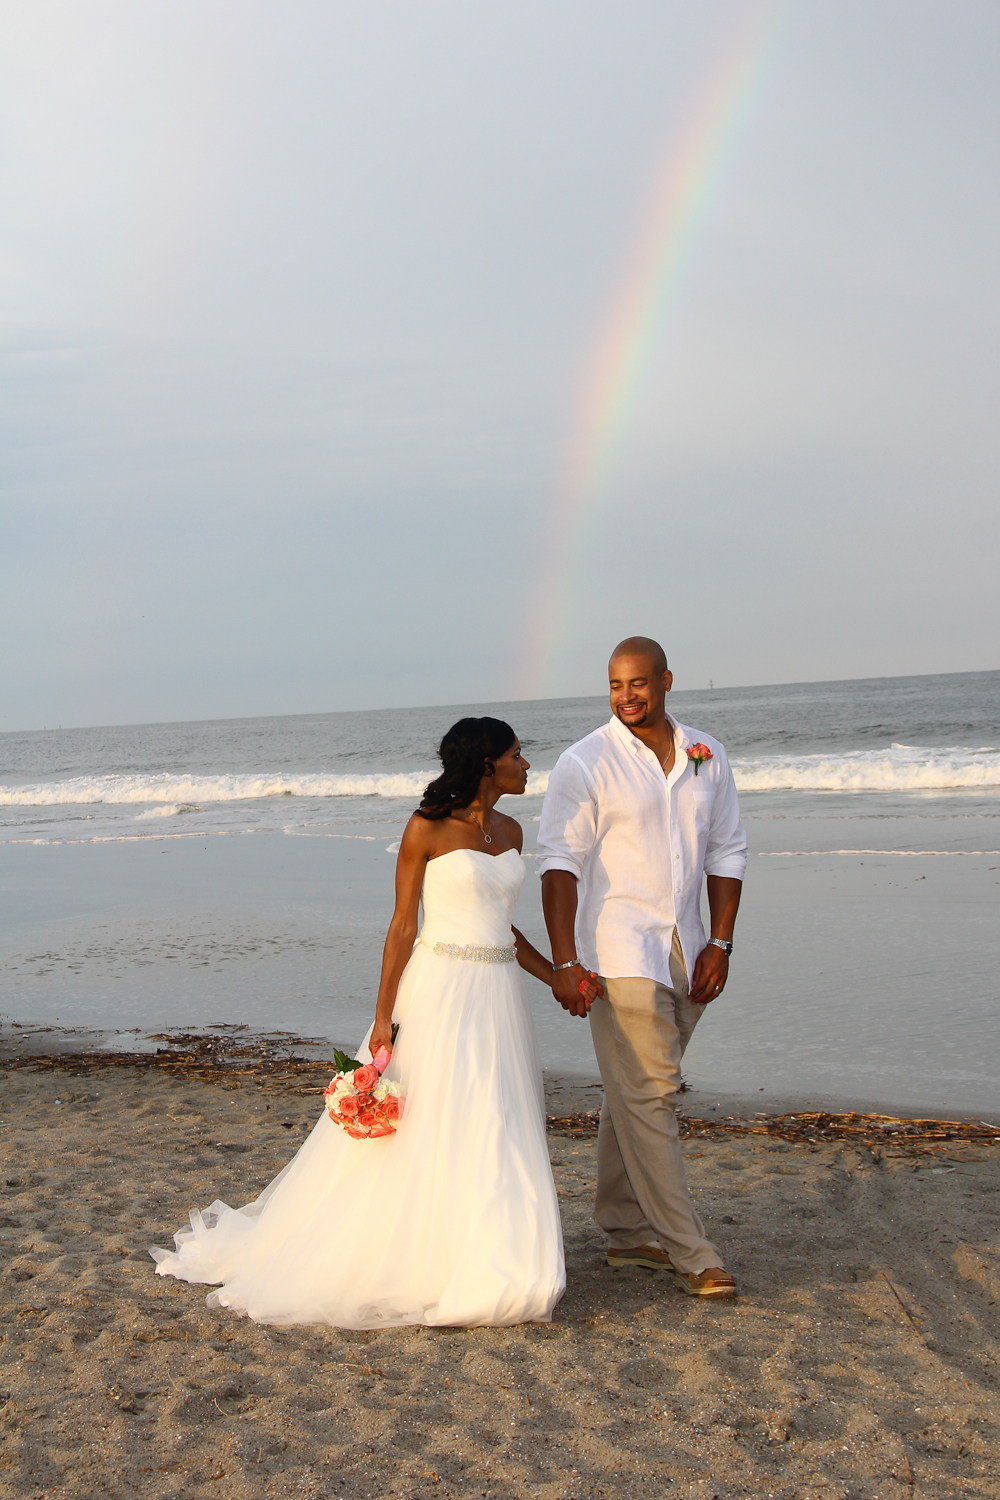 Tybee Island Wedding with rainbow on the beach